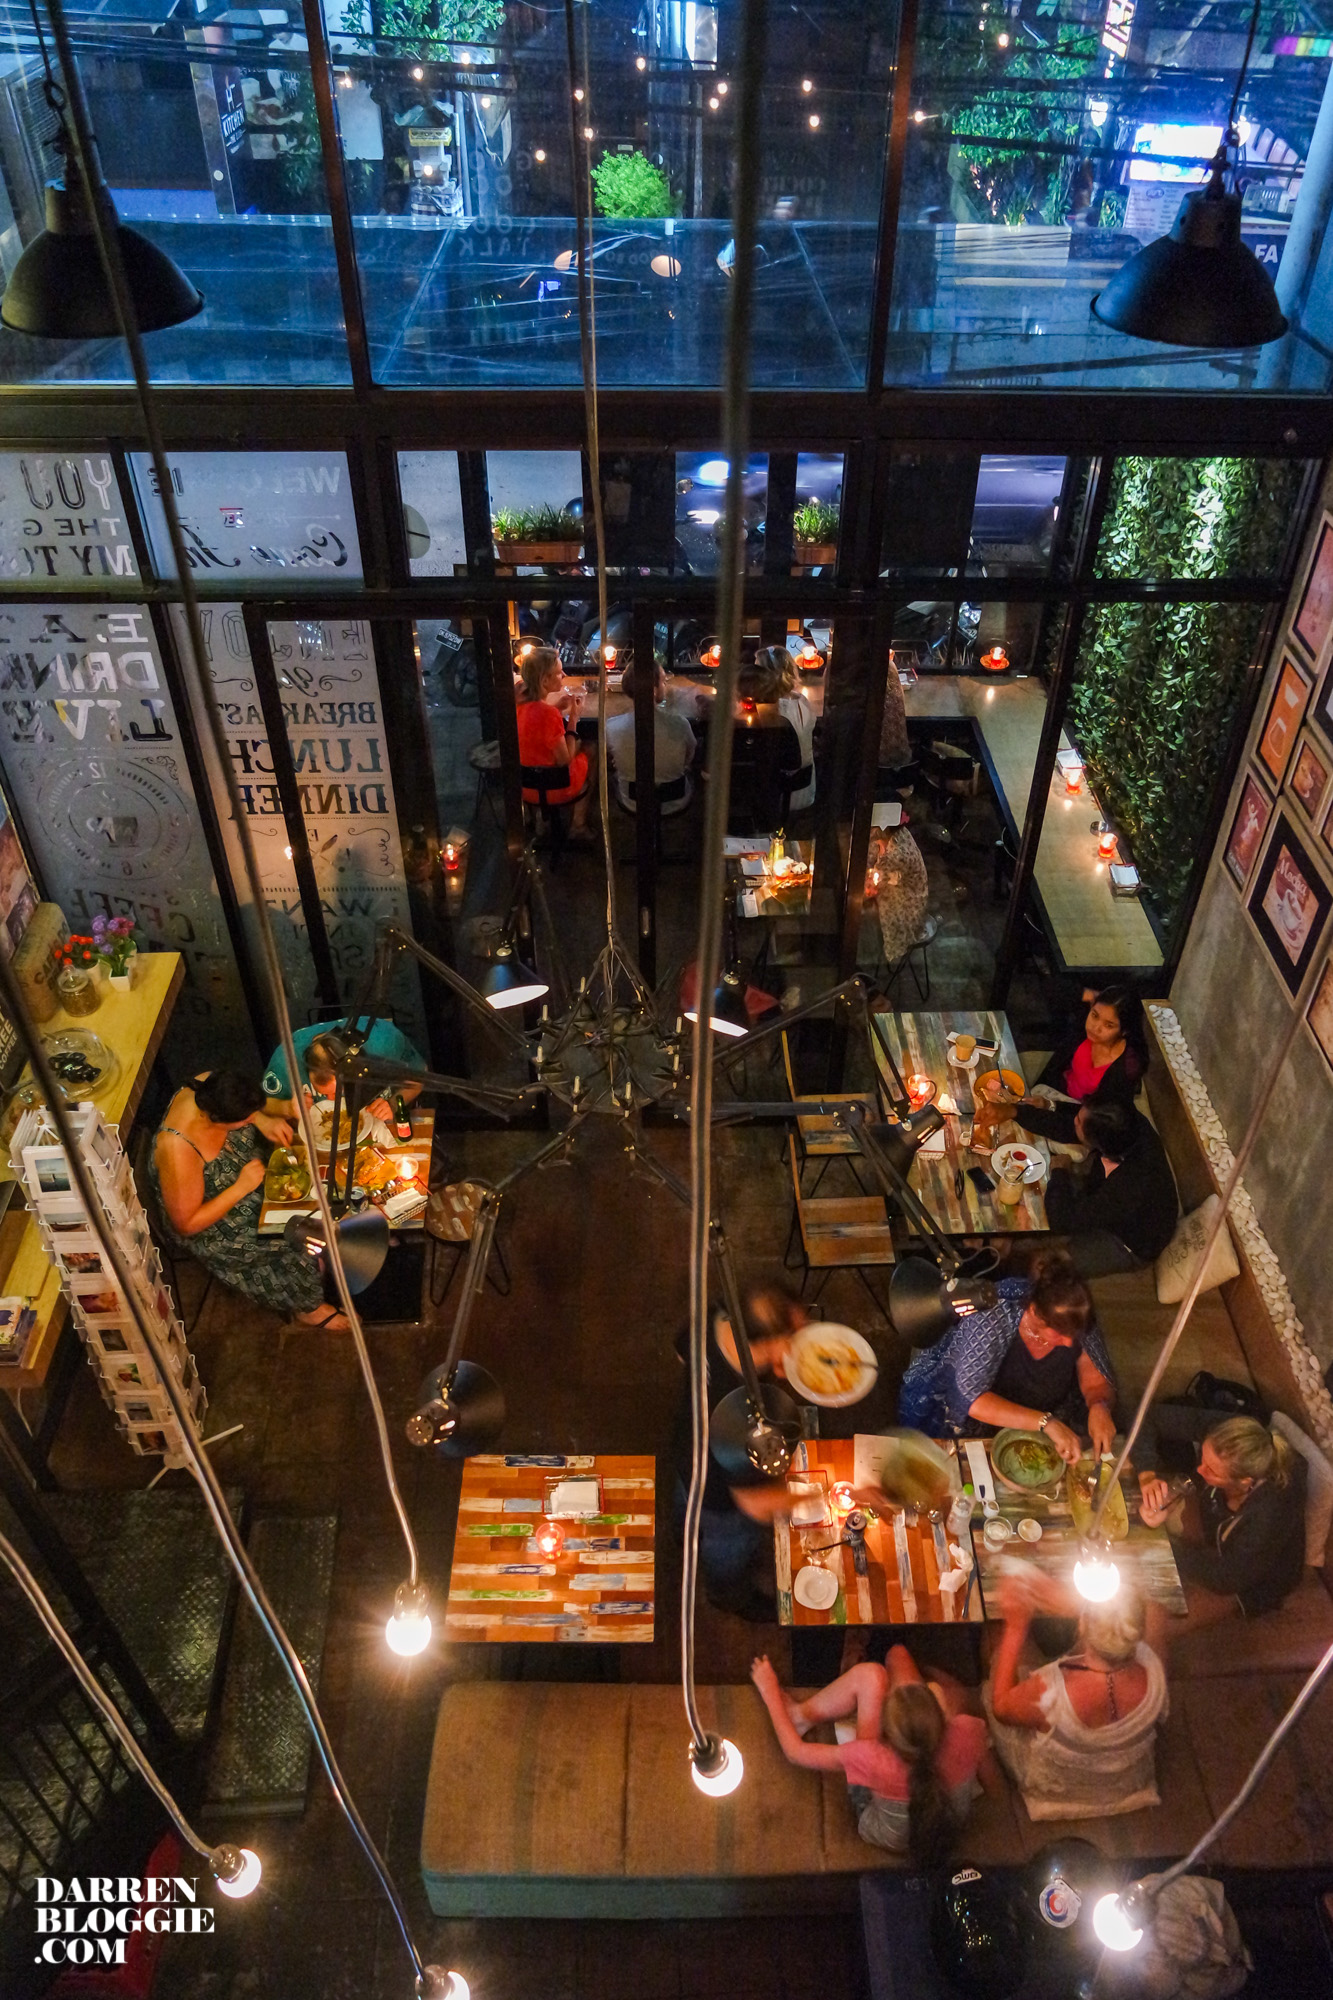 the-library-cafe-bali-8365